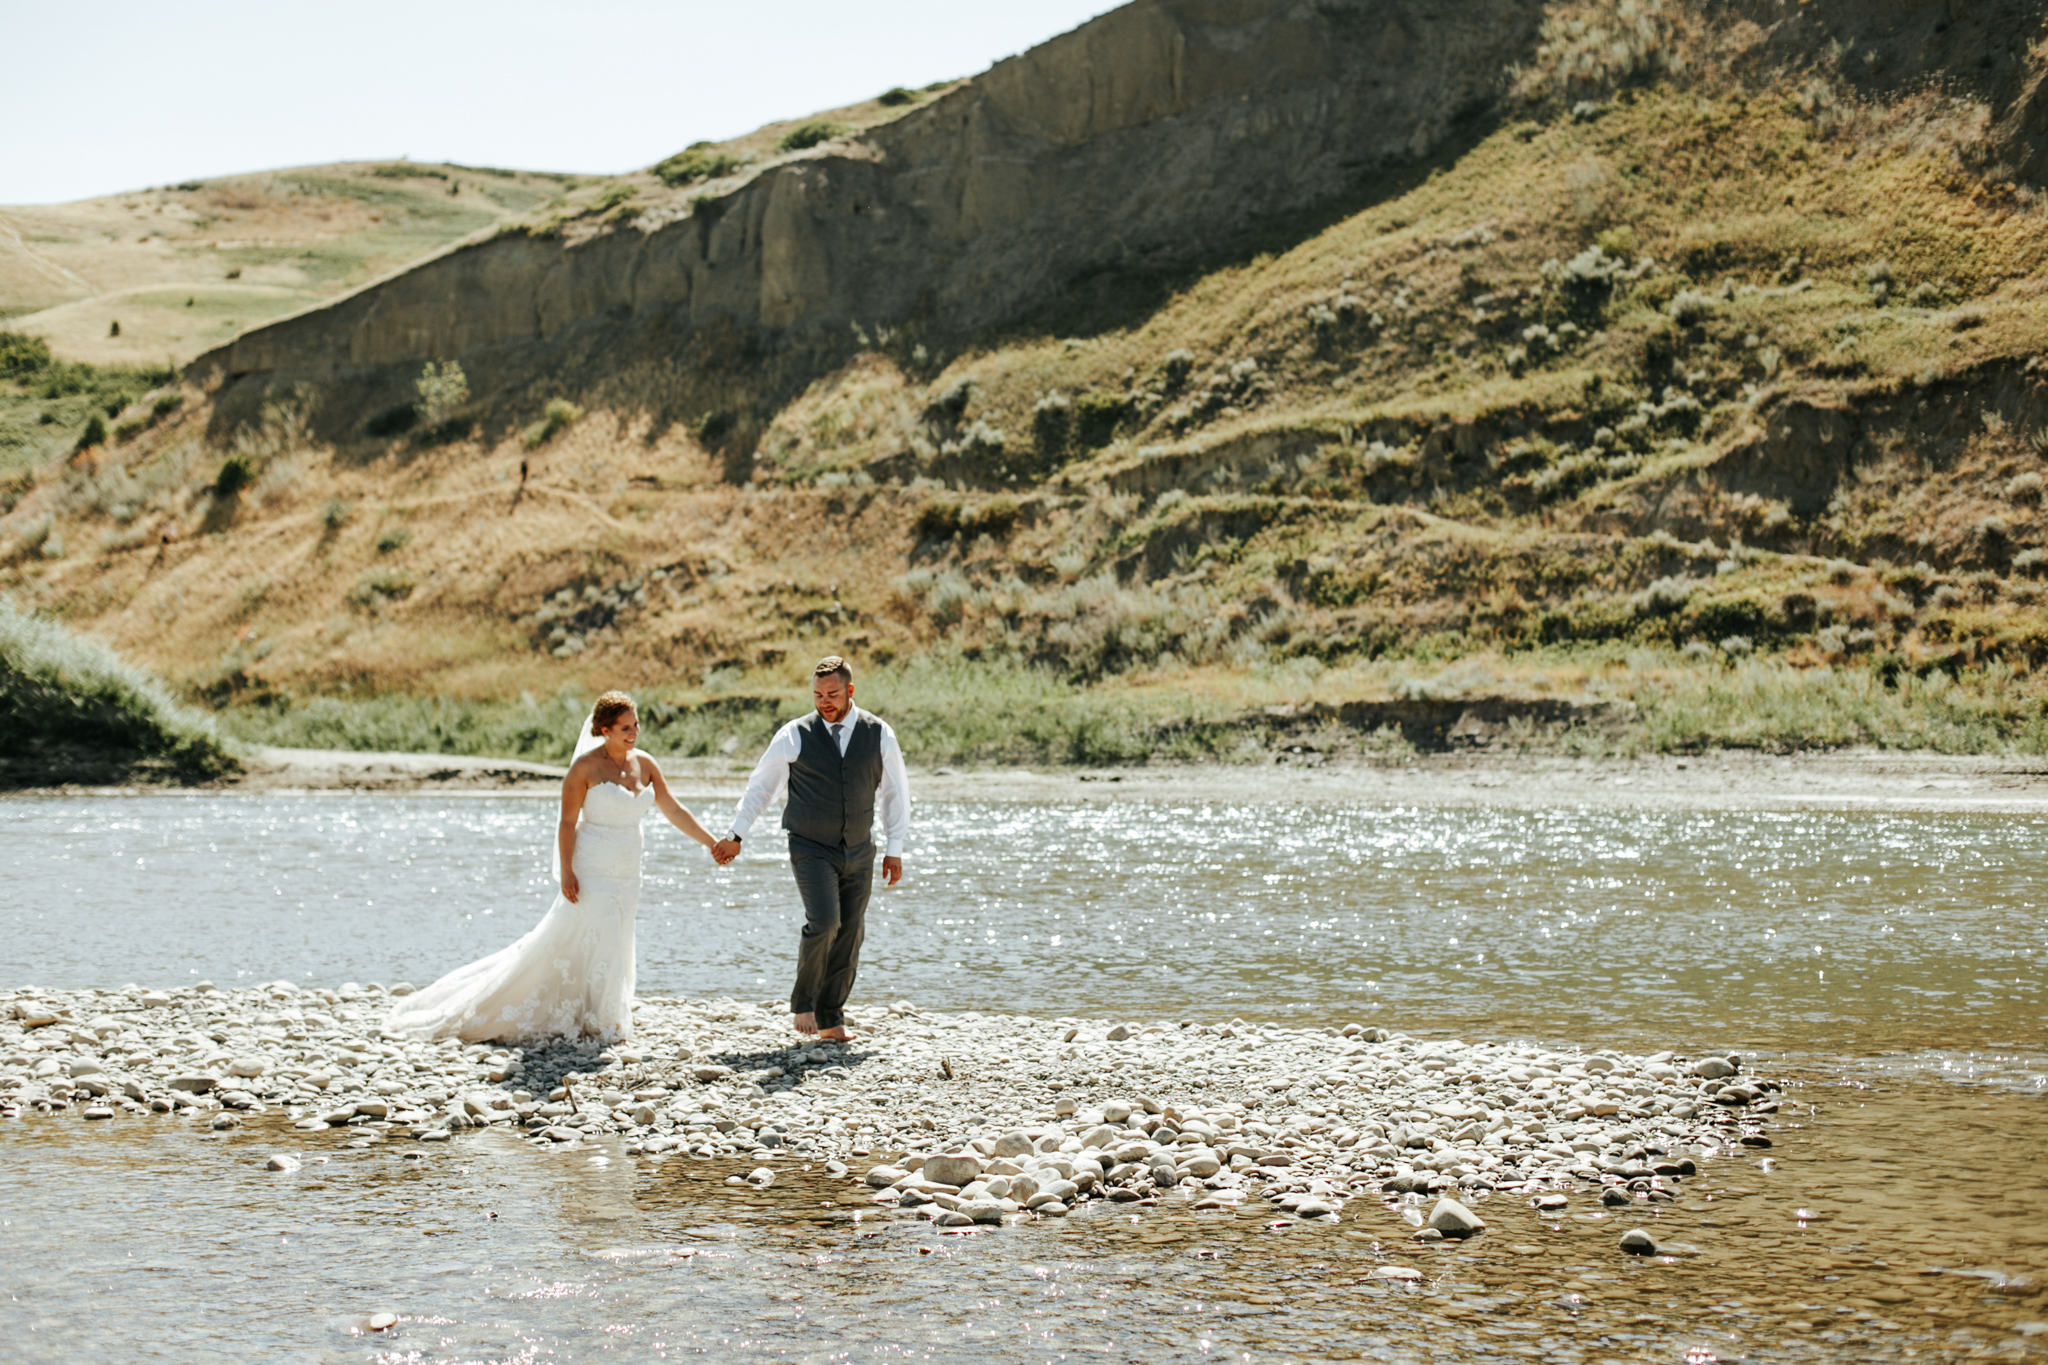 lethbridge-wedding-photographer-love-and-be-loved-photography-trent-danielle-galt-reception-picture-image-photo-149.jpg